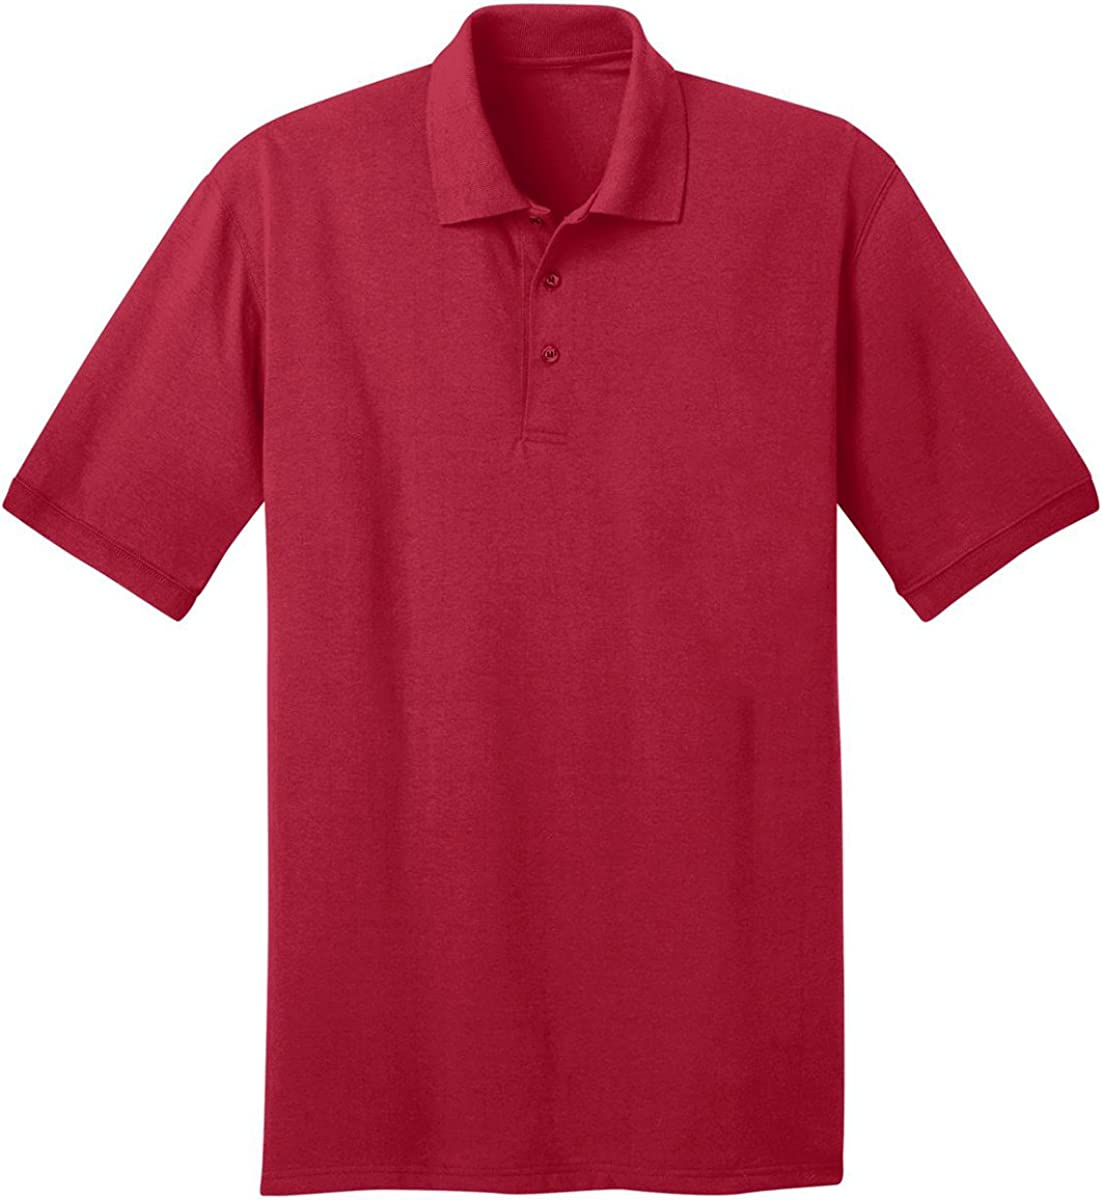 Port & Company Tall 5.5 oz Jersey Knit Polo Shirt-2XLT (Red)